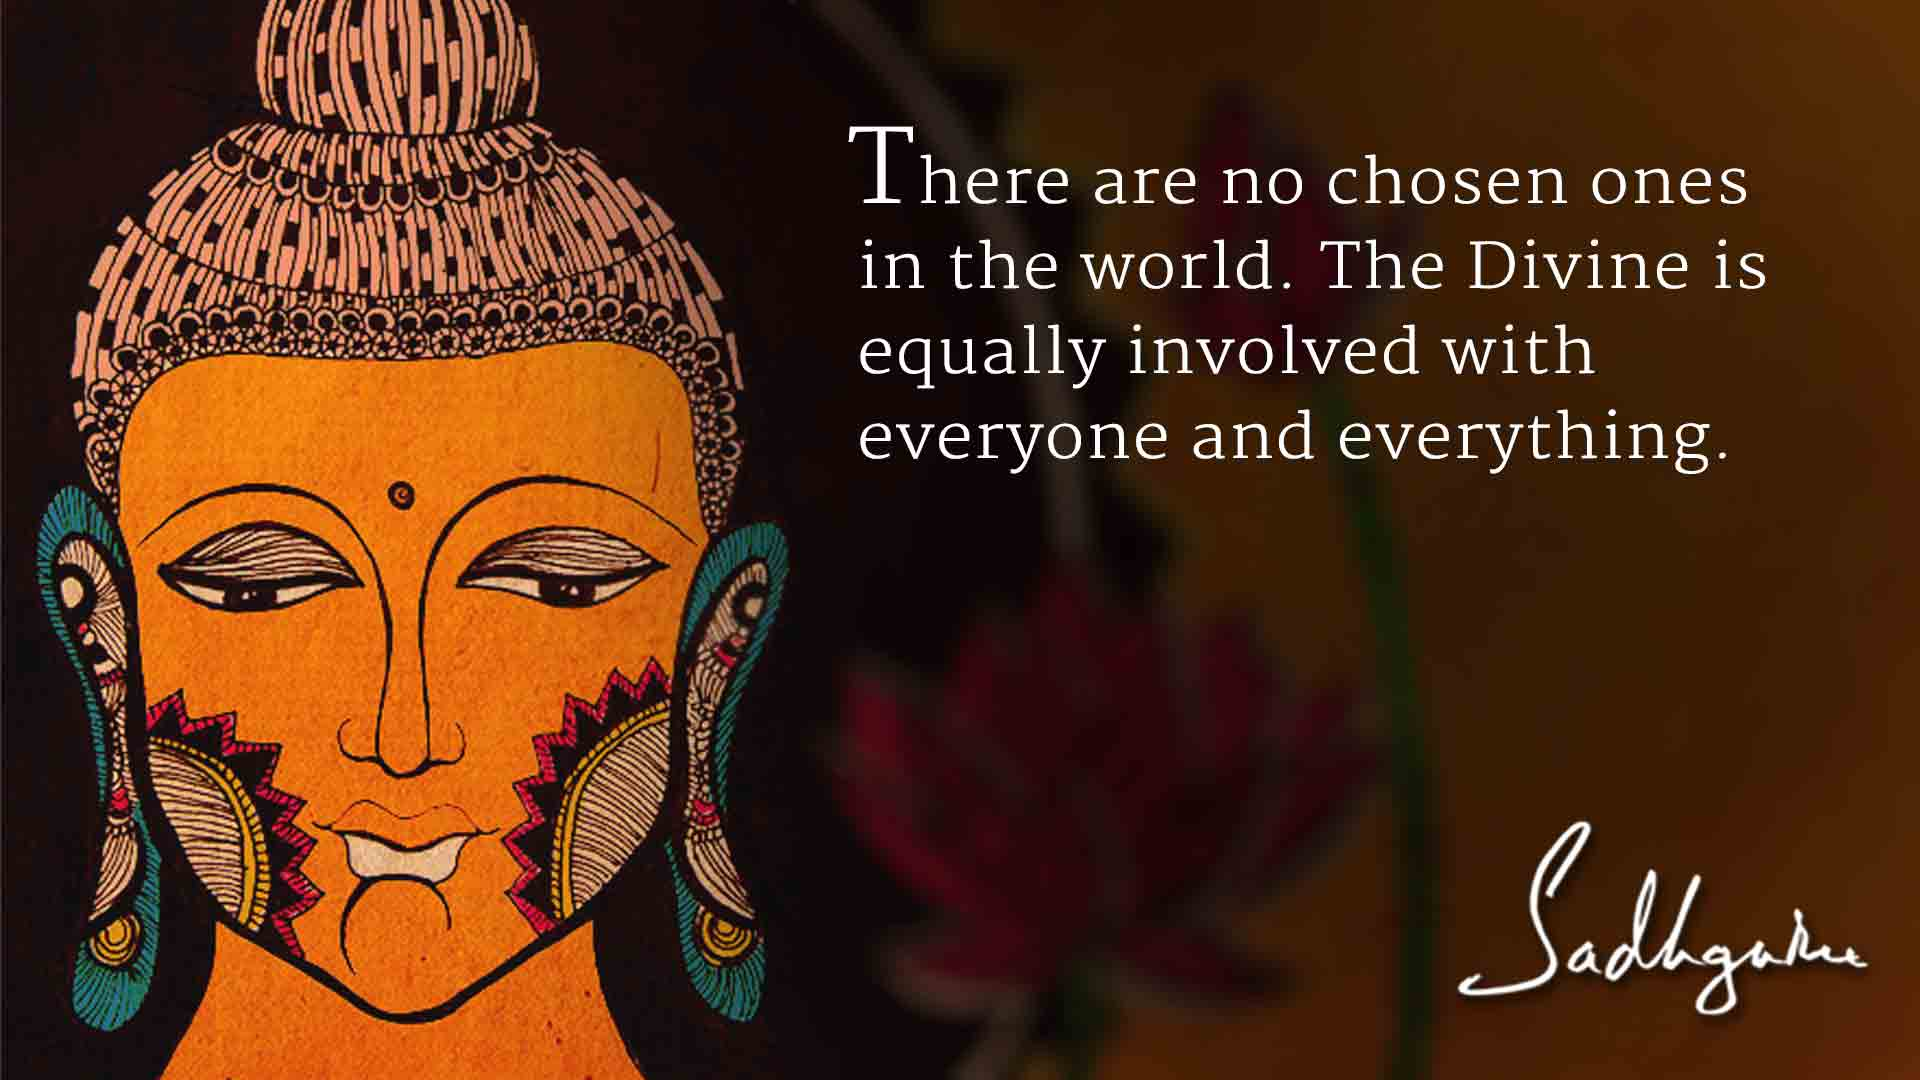 5 Quotes About Buddha From Sadhguru - The Isha Blog